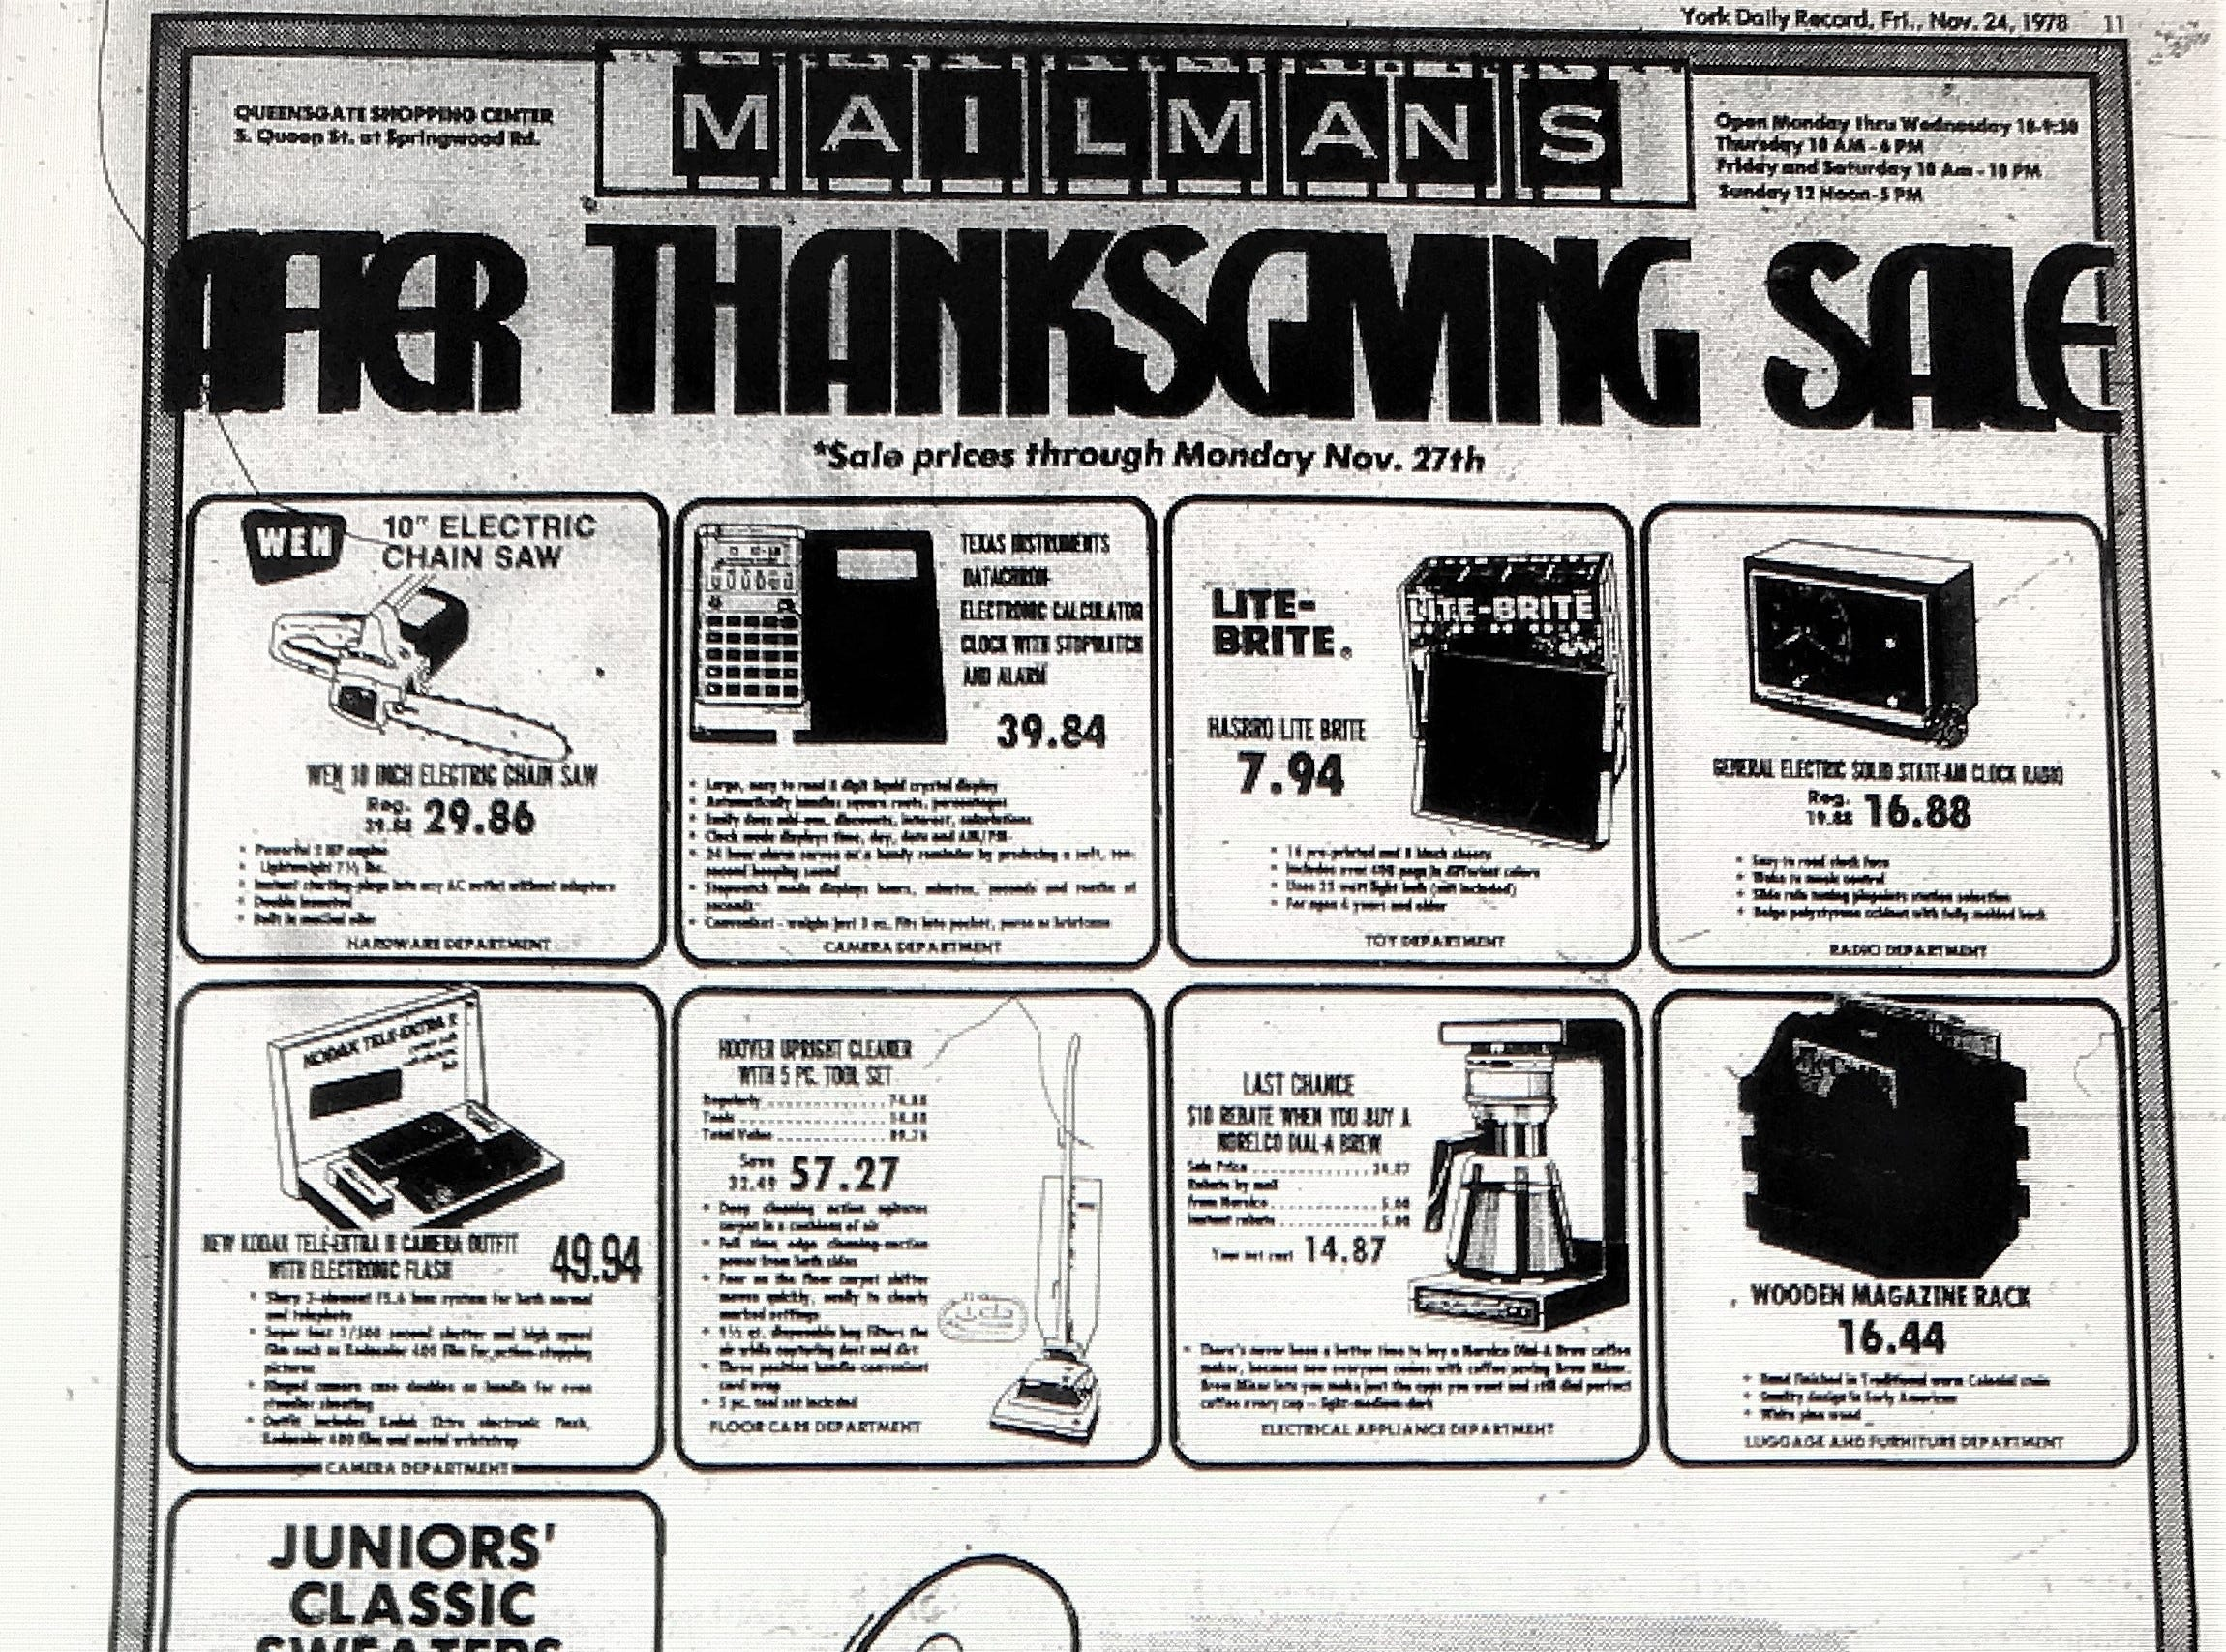 A 1978 holiday advertisement from Mailman's department store in the Queen St. Shopping Center. Mailman's closed in 1990.